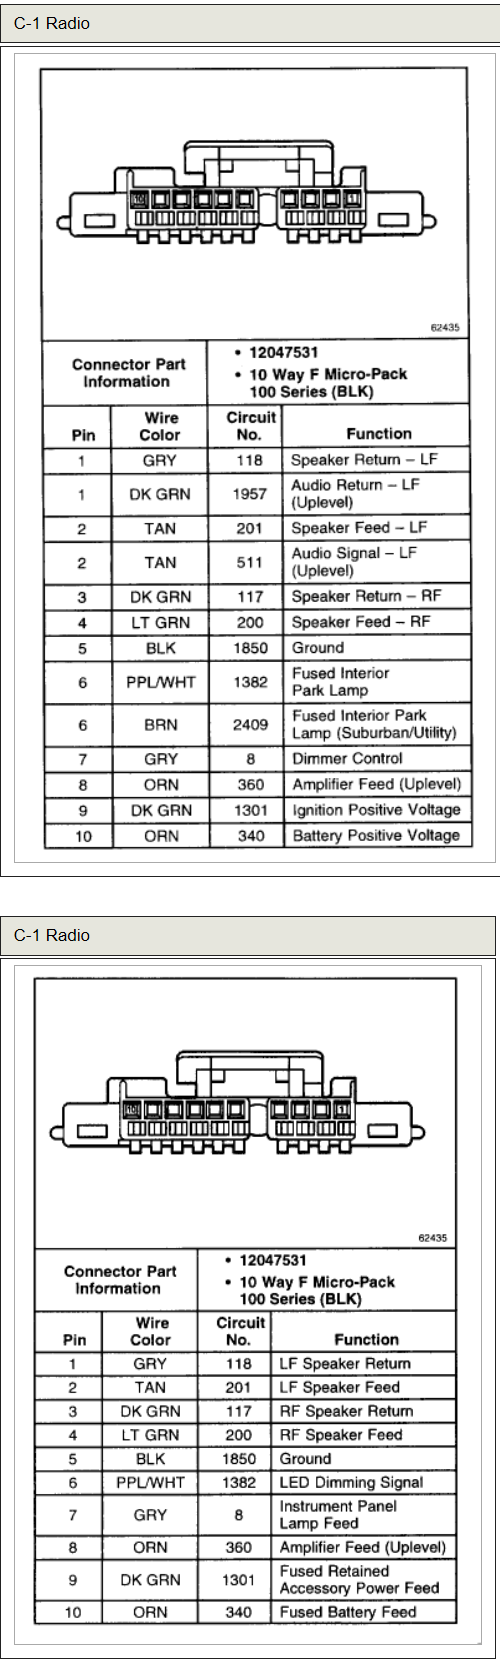 1987 Chevy Truck Radio Wiring Diagram 87 chevy truck wiring ... on 85 c10 wheels, 85 c10 lights, 85 c10 frame, 85 c10 accessories, 85 c10 fuel tank, 85 c10 door, 85 c10 horn, 85 c10 parts, 85 c10 engine, 85 c10 suspension,